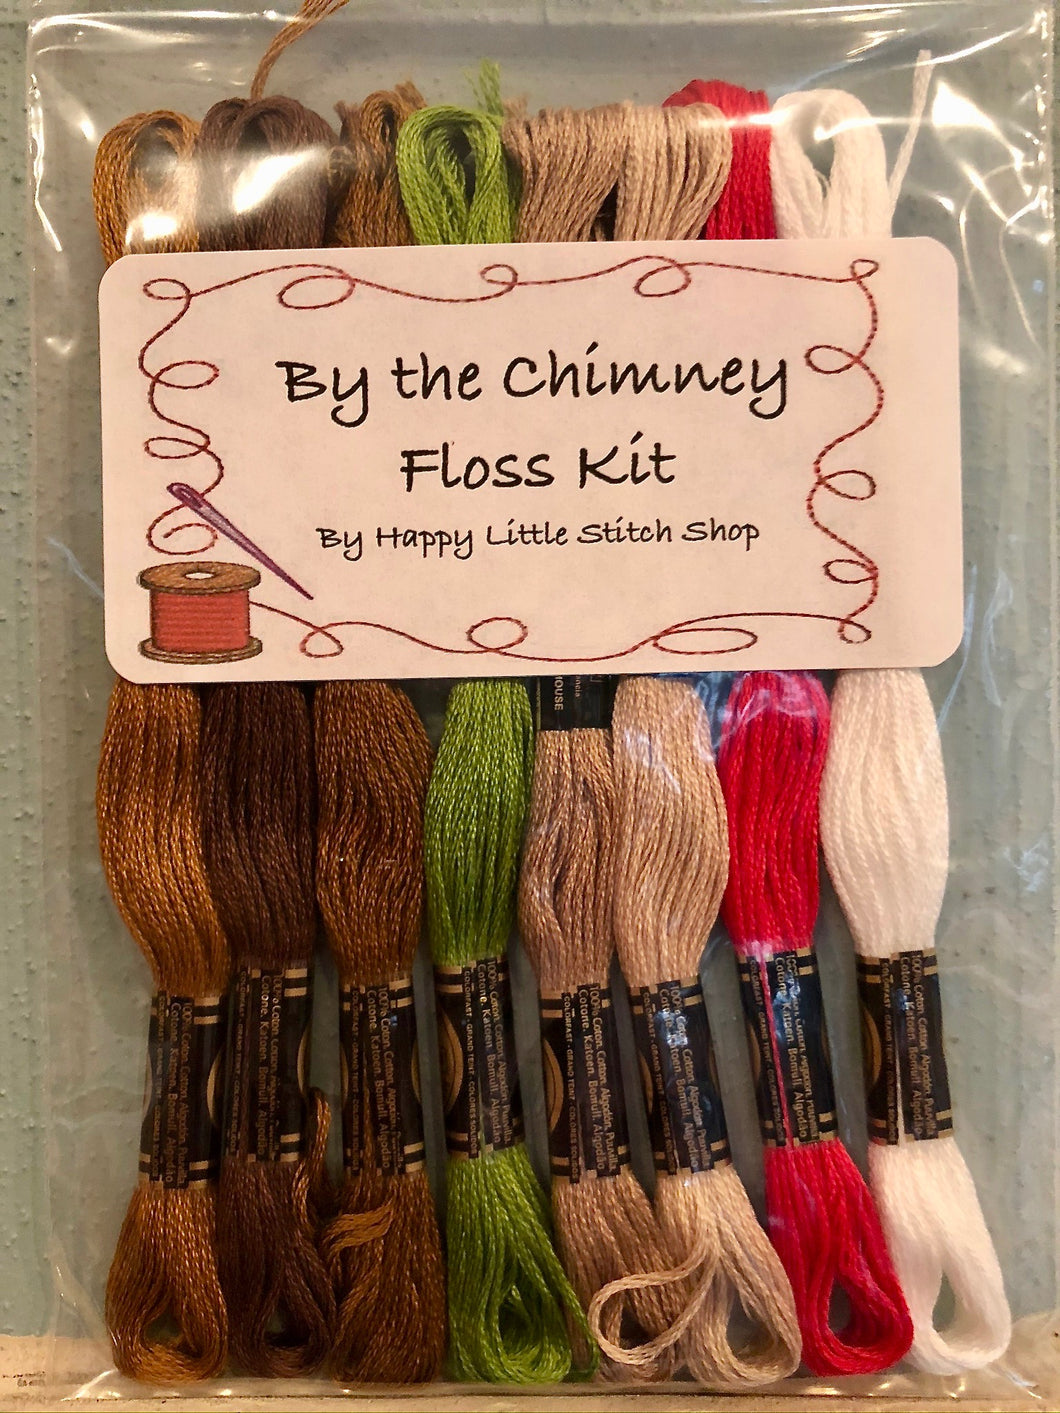 Floss Kit - By the Chimney by Country Cottage Needleworks